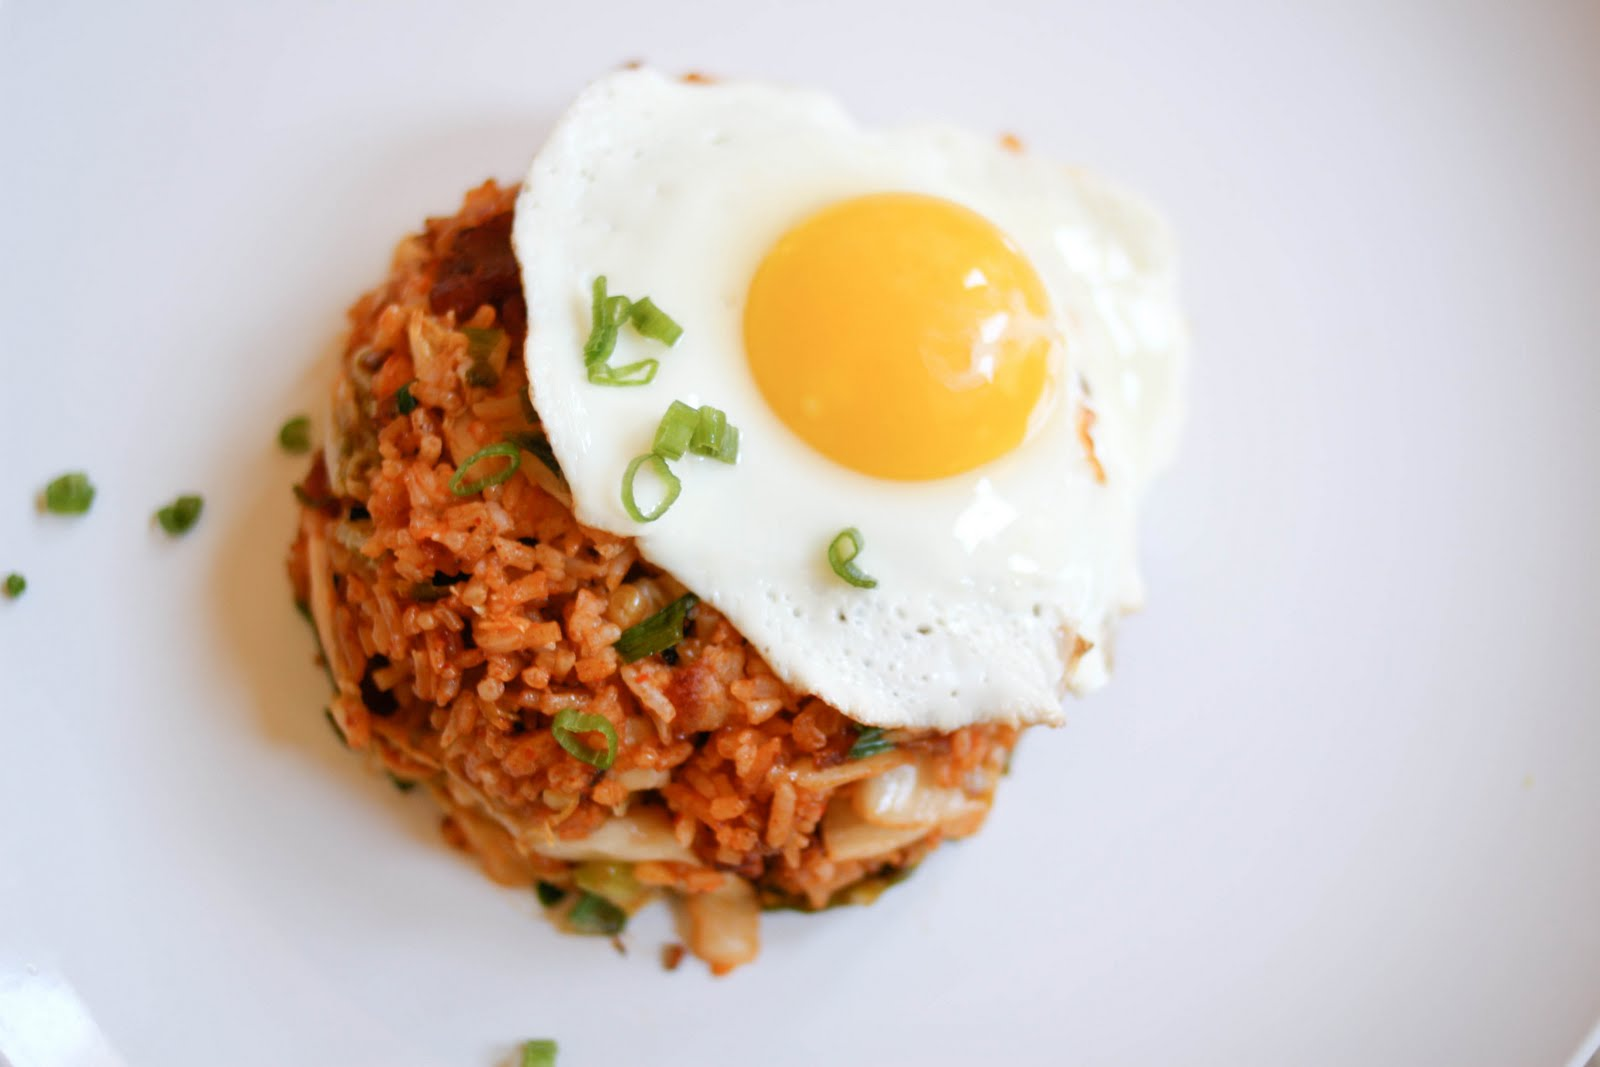 Kimchi + Crispy Rice + Bacon + Perfectly Fried Egg = NOM.